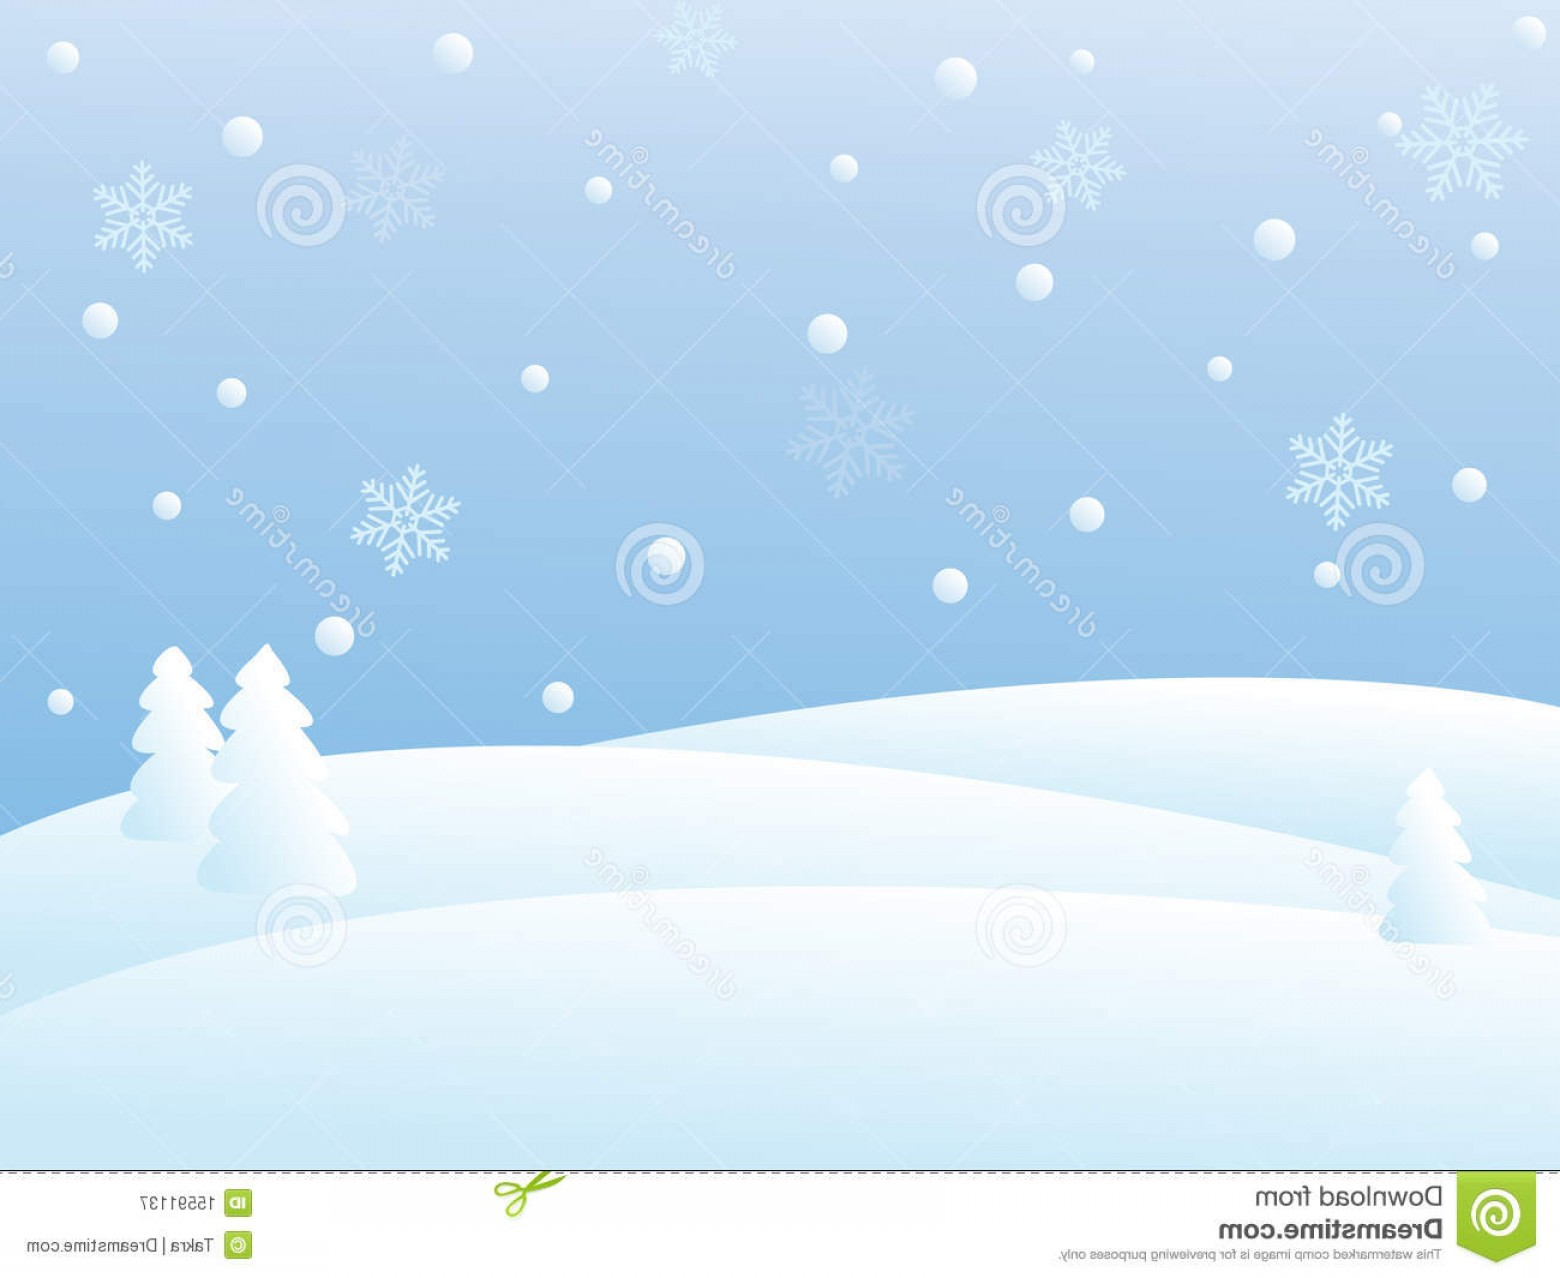 Free Winter Vector: Royalty Free Stock Photography Vector Winter Scene Image